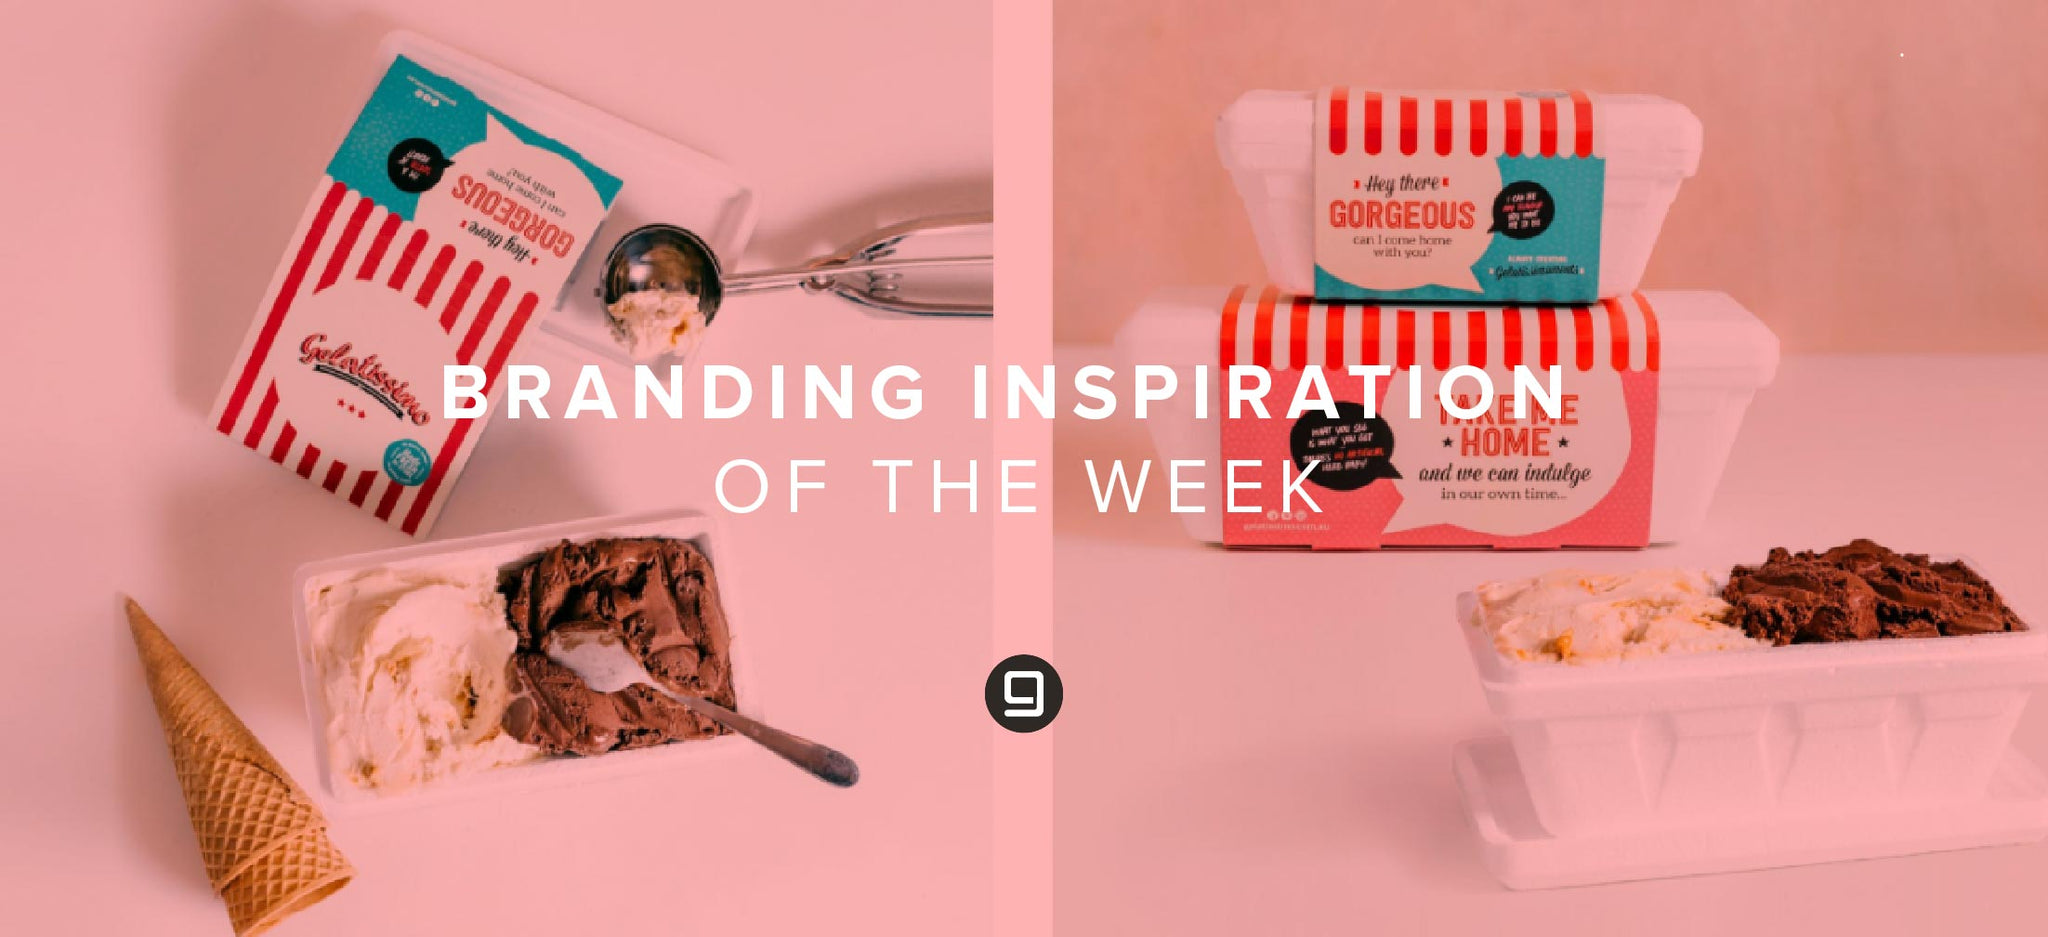 Design Of The Week: Gelatissimo